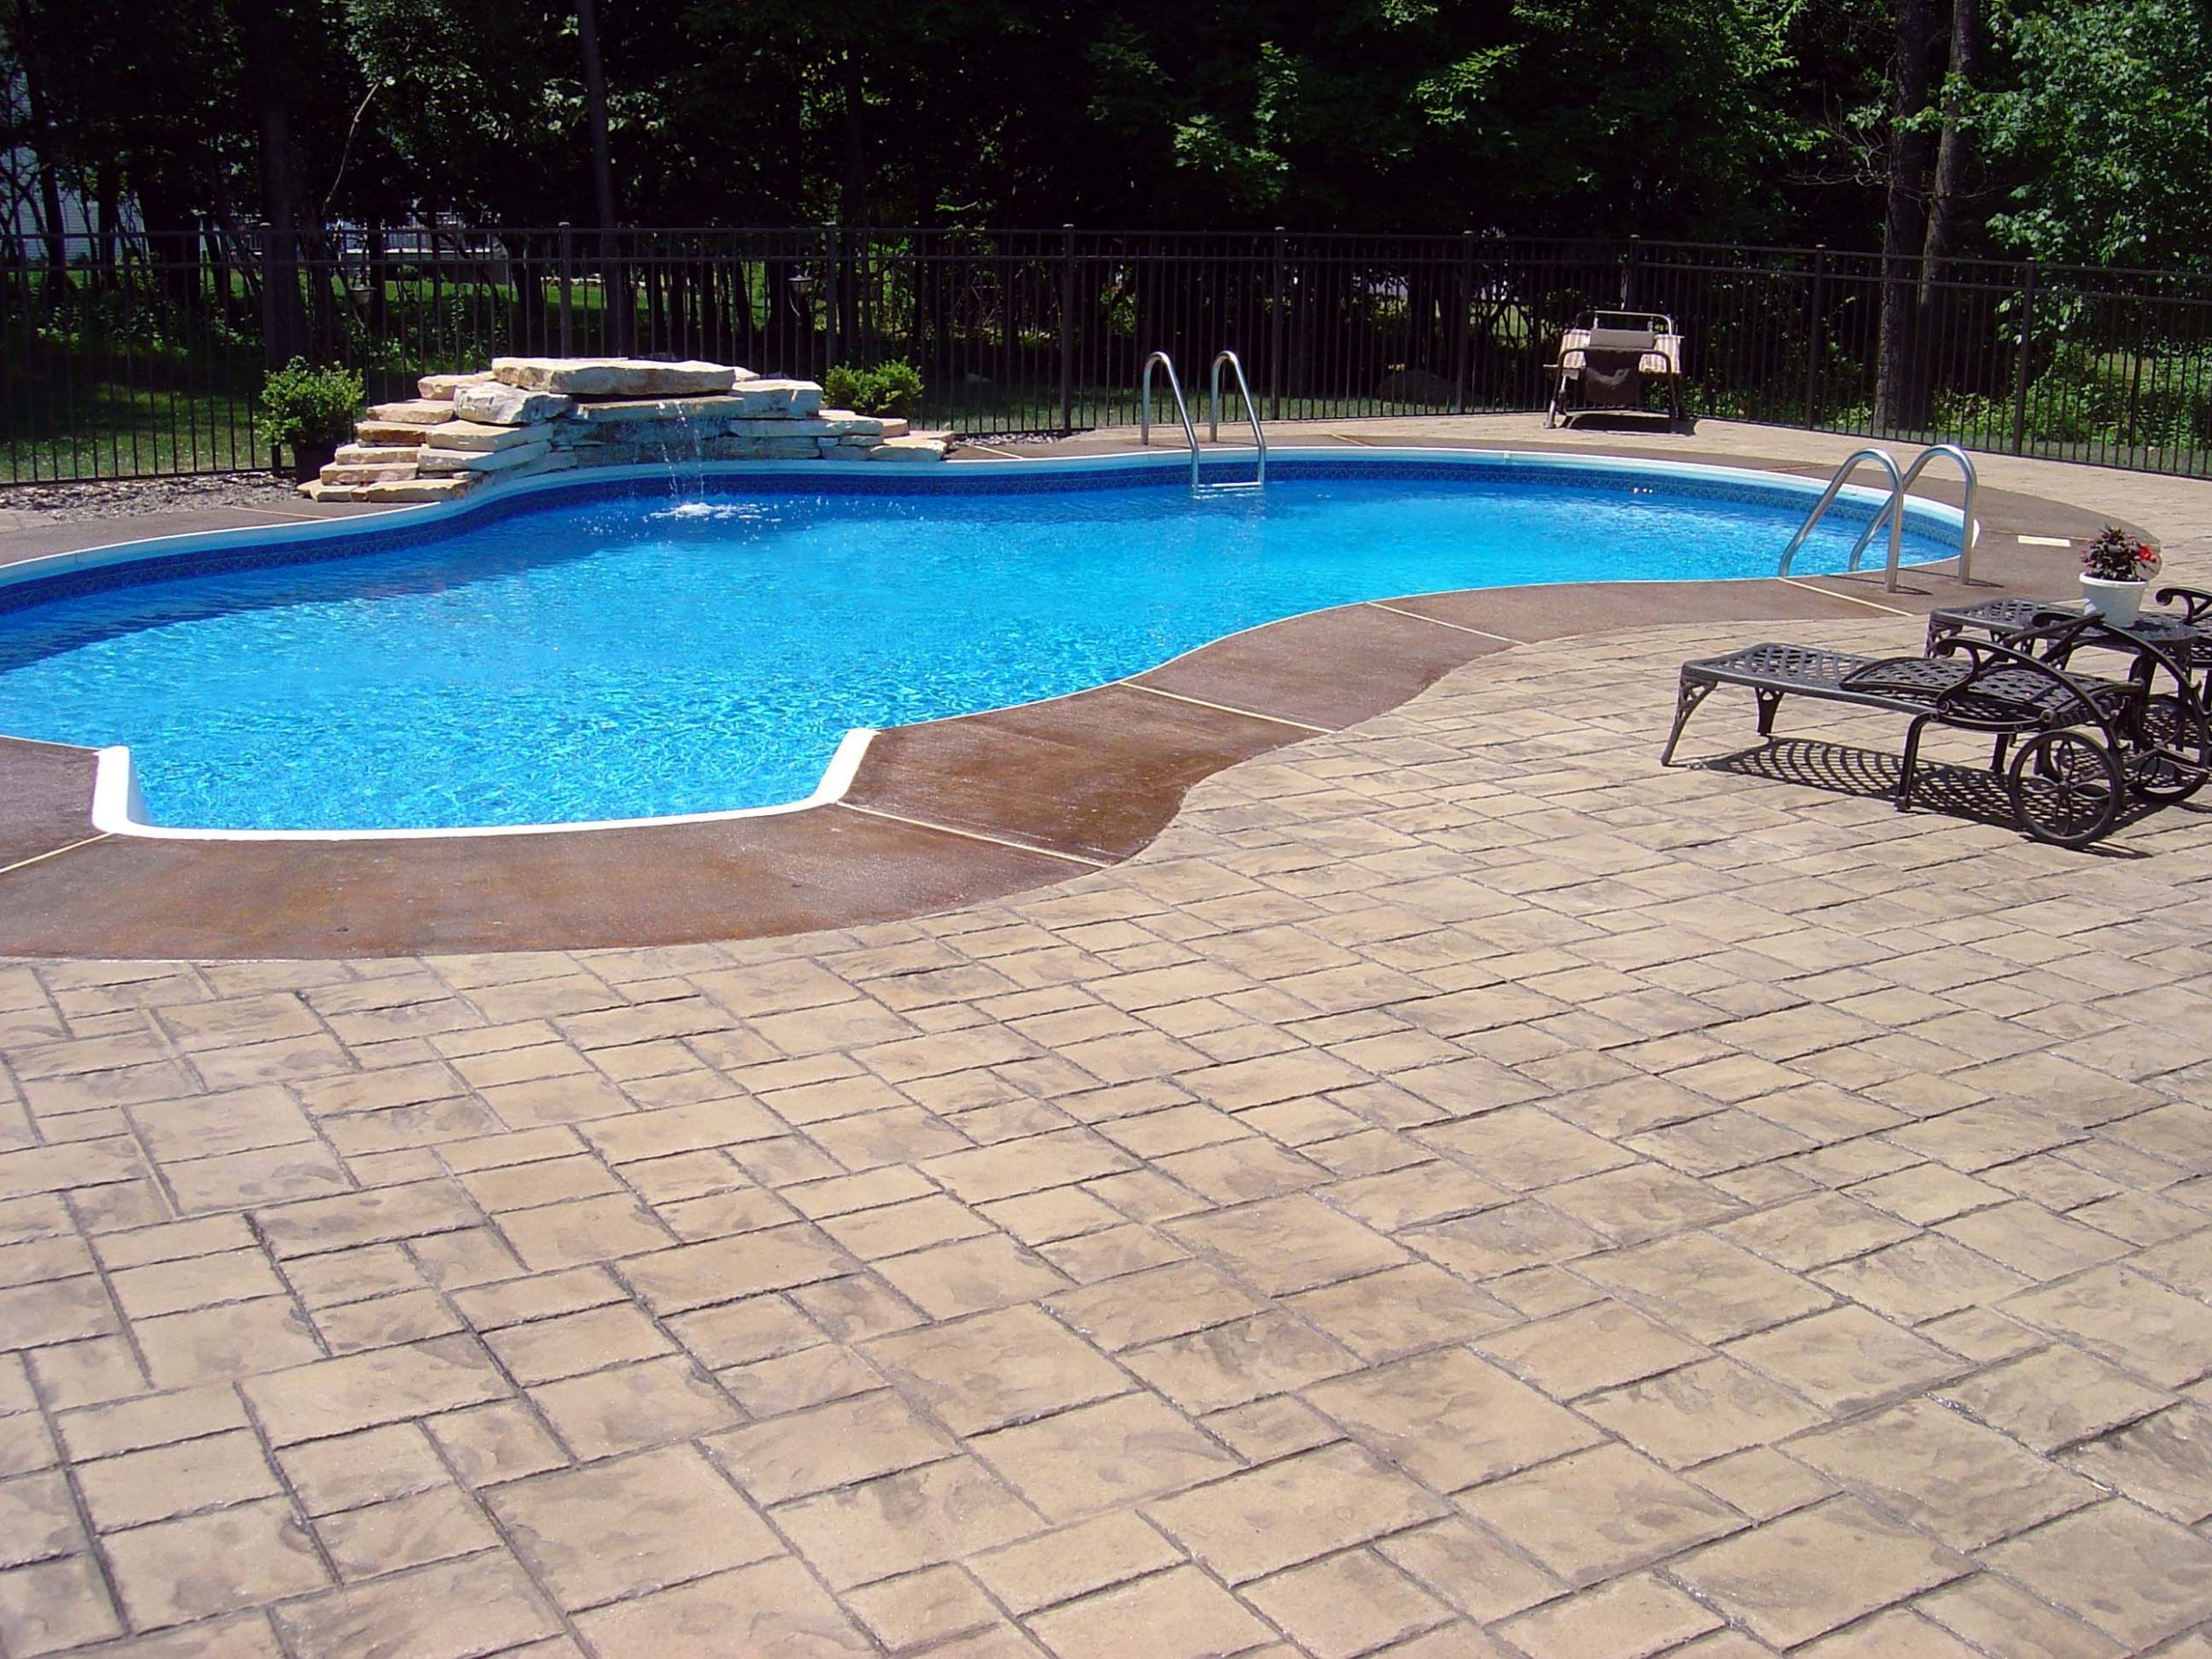 Concrete Pool Ideas | Pool design and Pool ideas